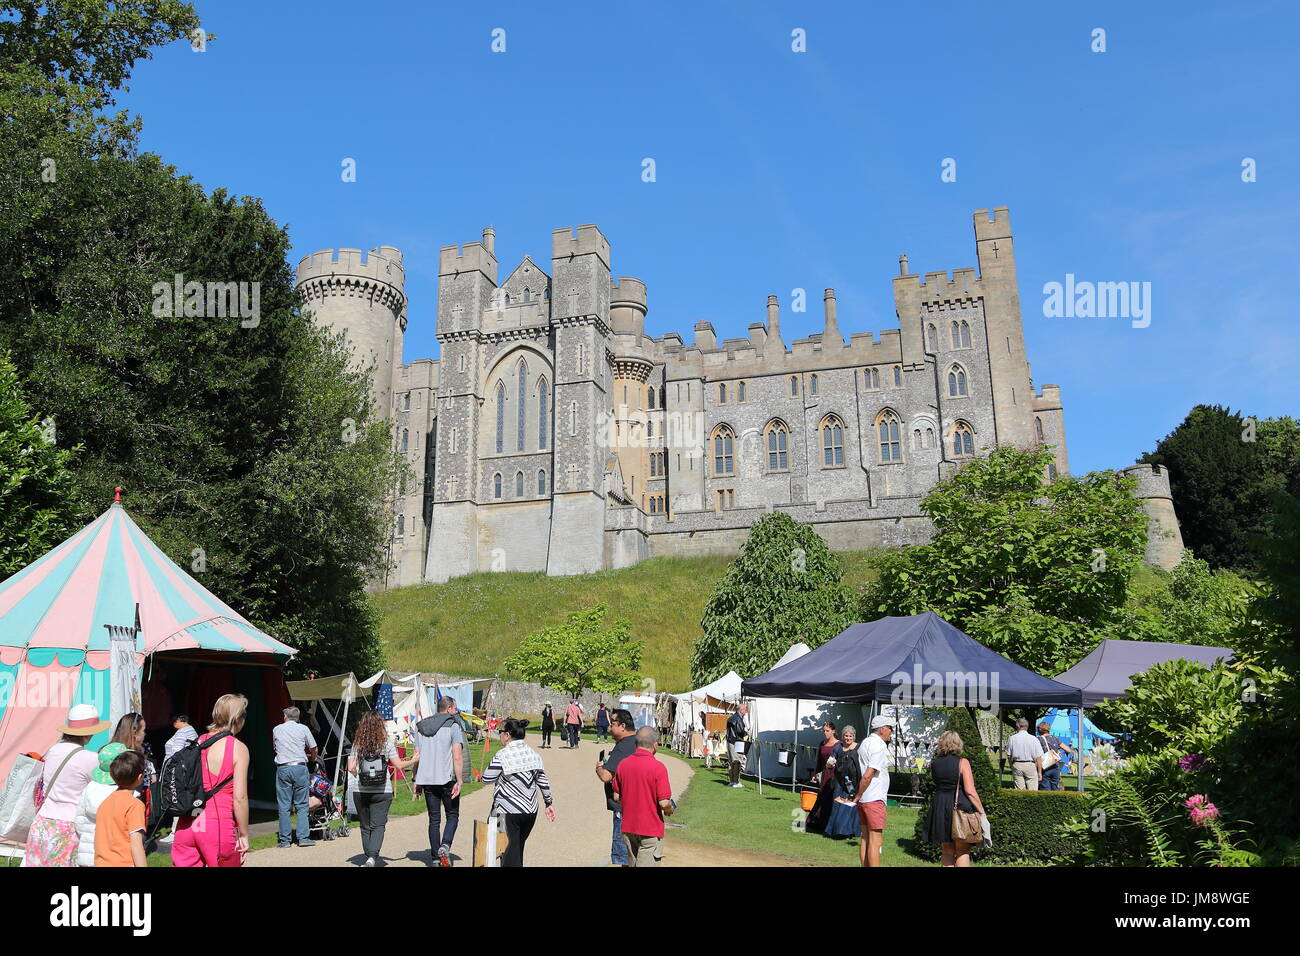 Visitors Saw A Great Spectacle When Actors In Medieval Armour Fought On Foot And Horse At Arundel Castle